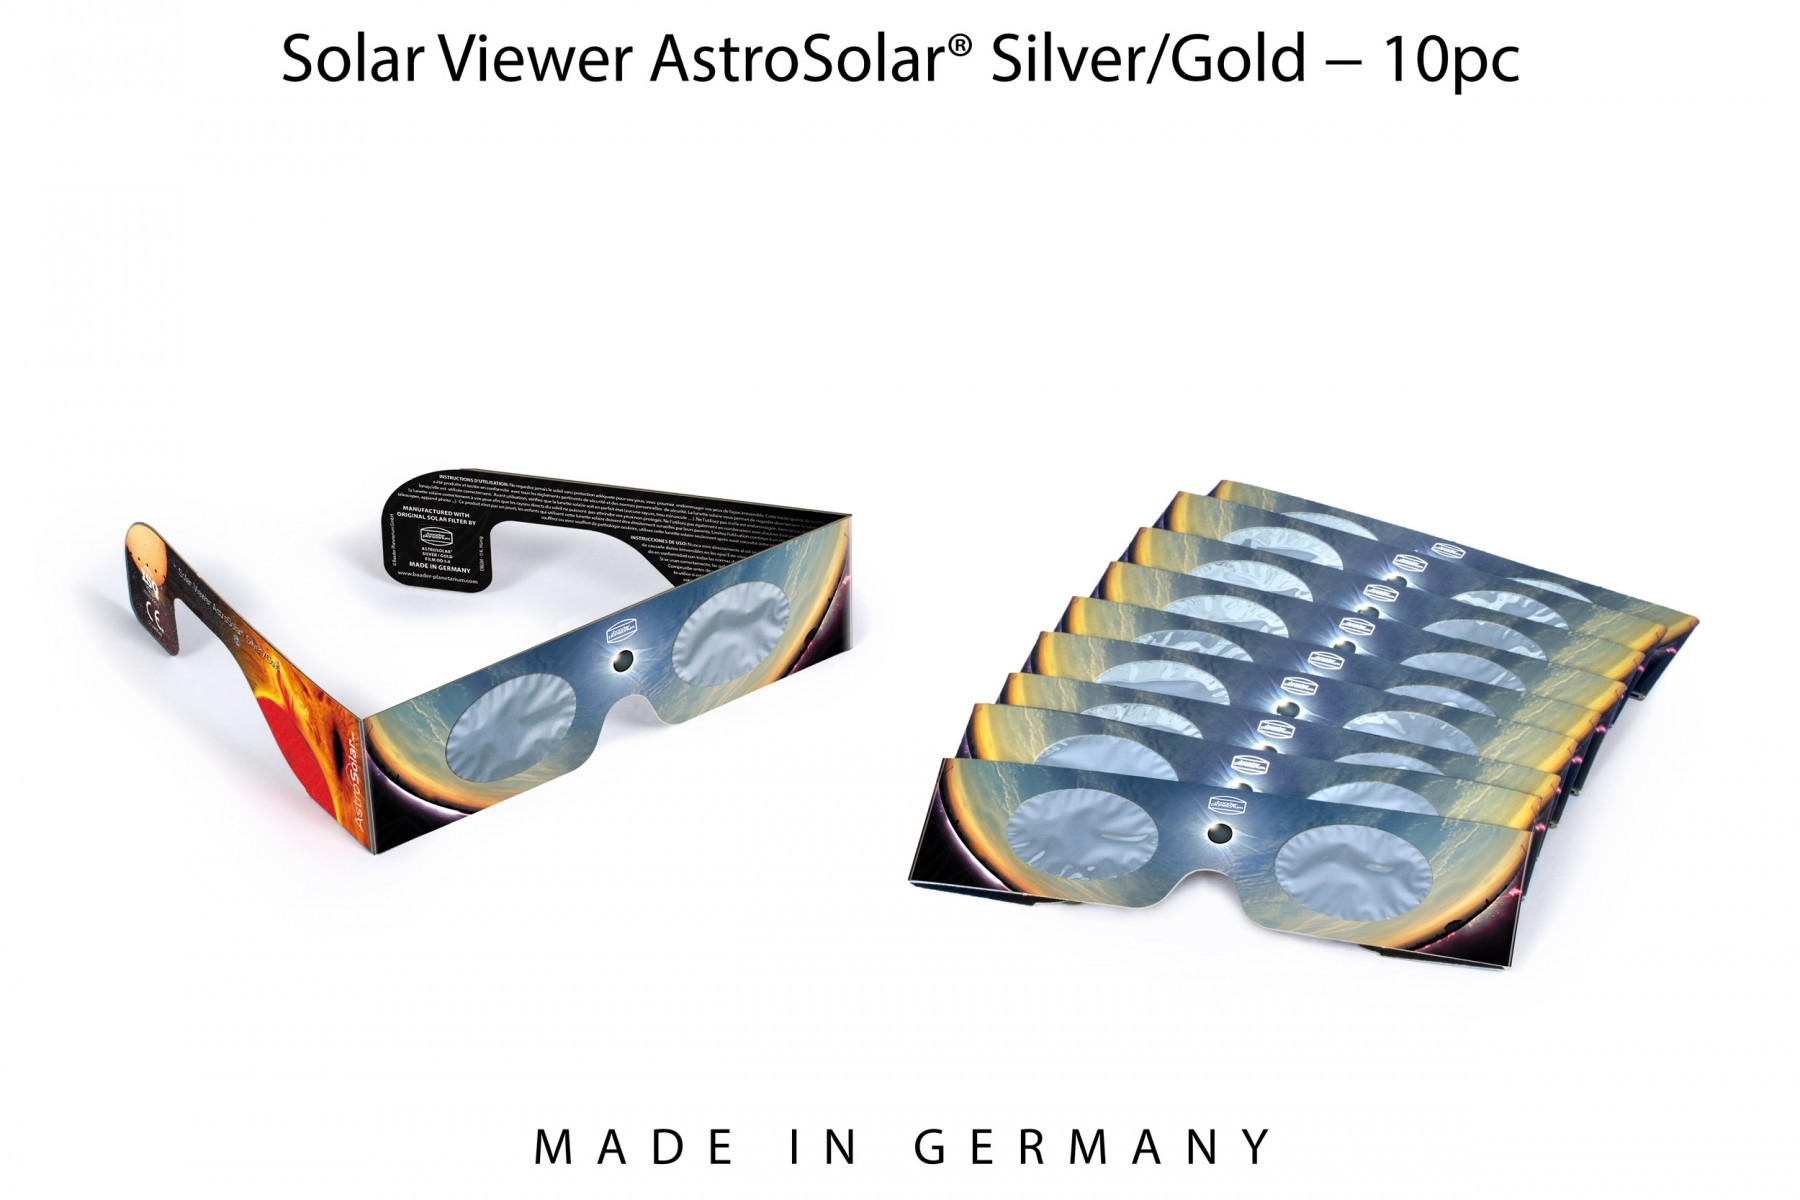 Kit 10 pezzi Occhialino Solar Viewer AstroSolar Silver/Gold